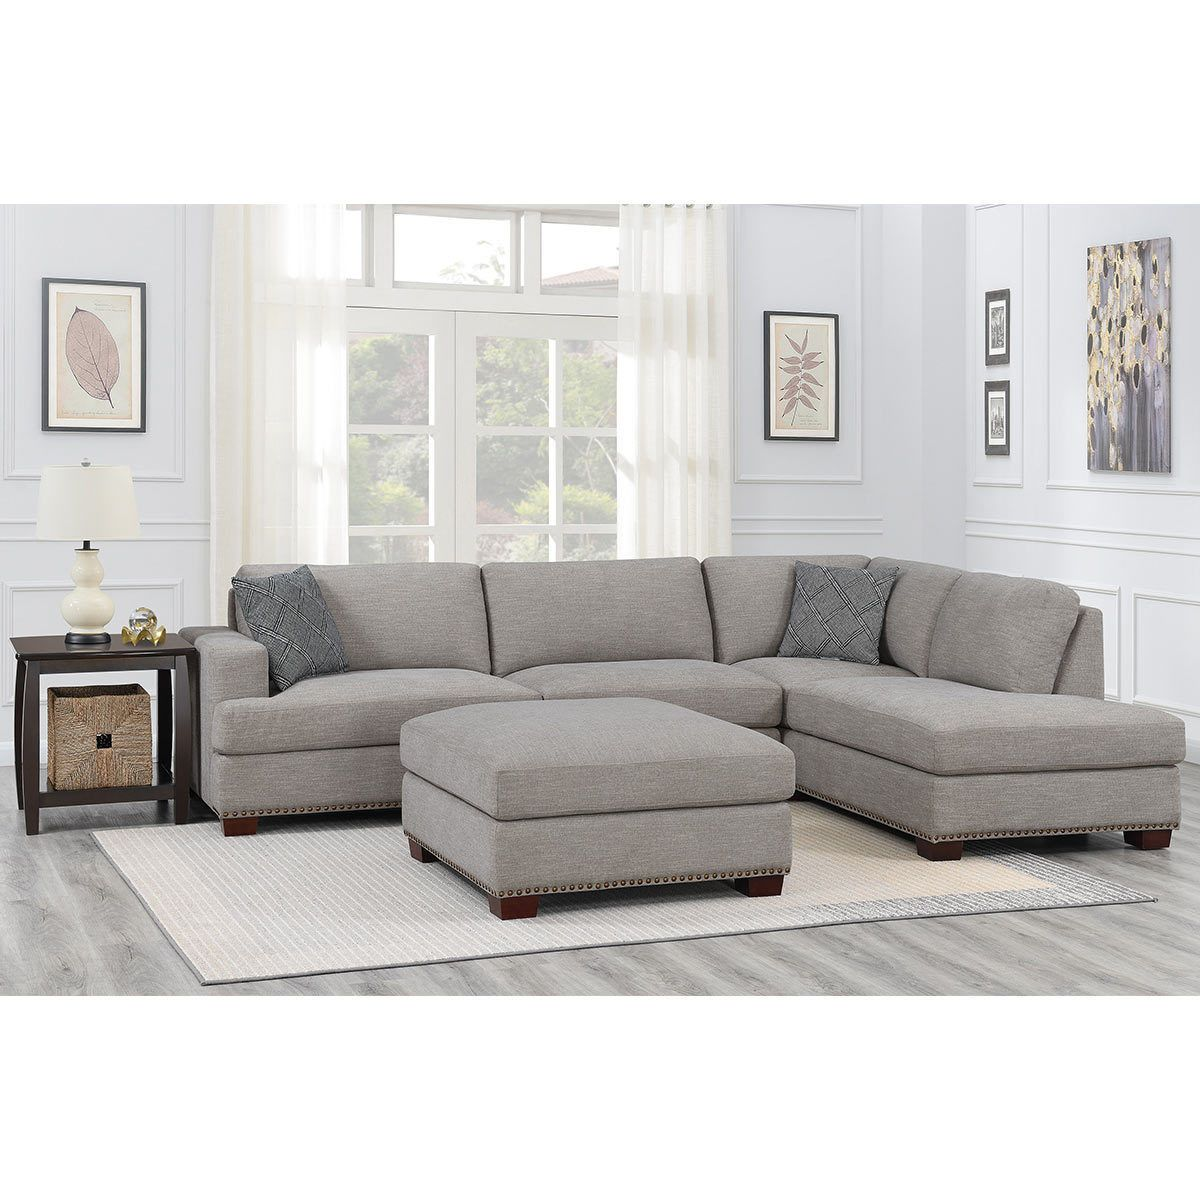 Bainbridge Home Sinclair 3 Piece Grey Fabric Sectional Sofa With Ottoman, Right Facing | Costco UK | Grey Sectional Couch, Fabric Sectional Sofas, Sectional Couch